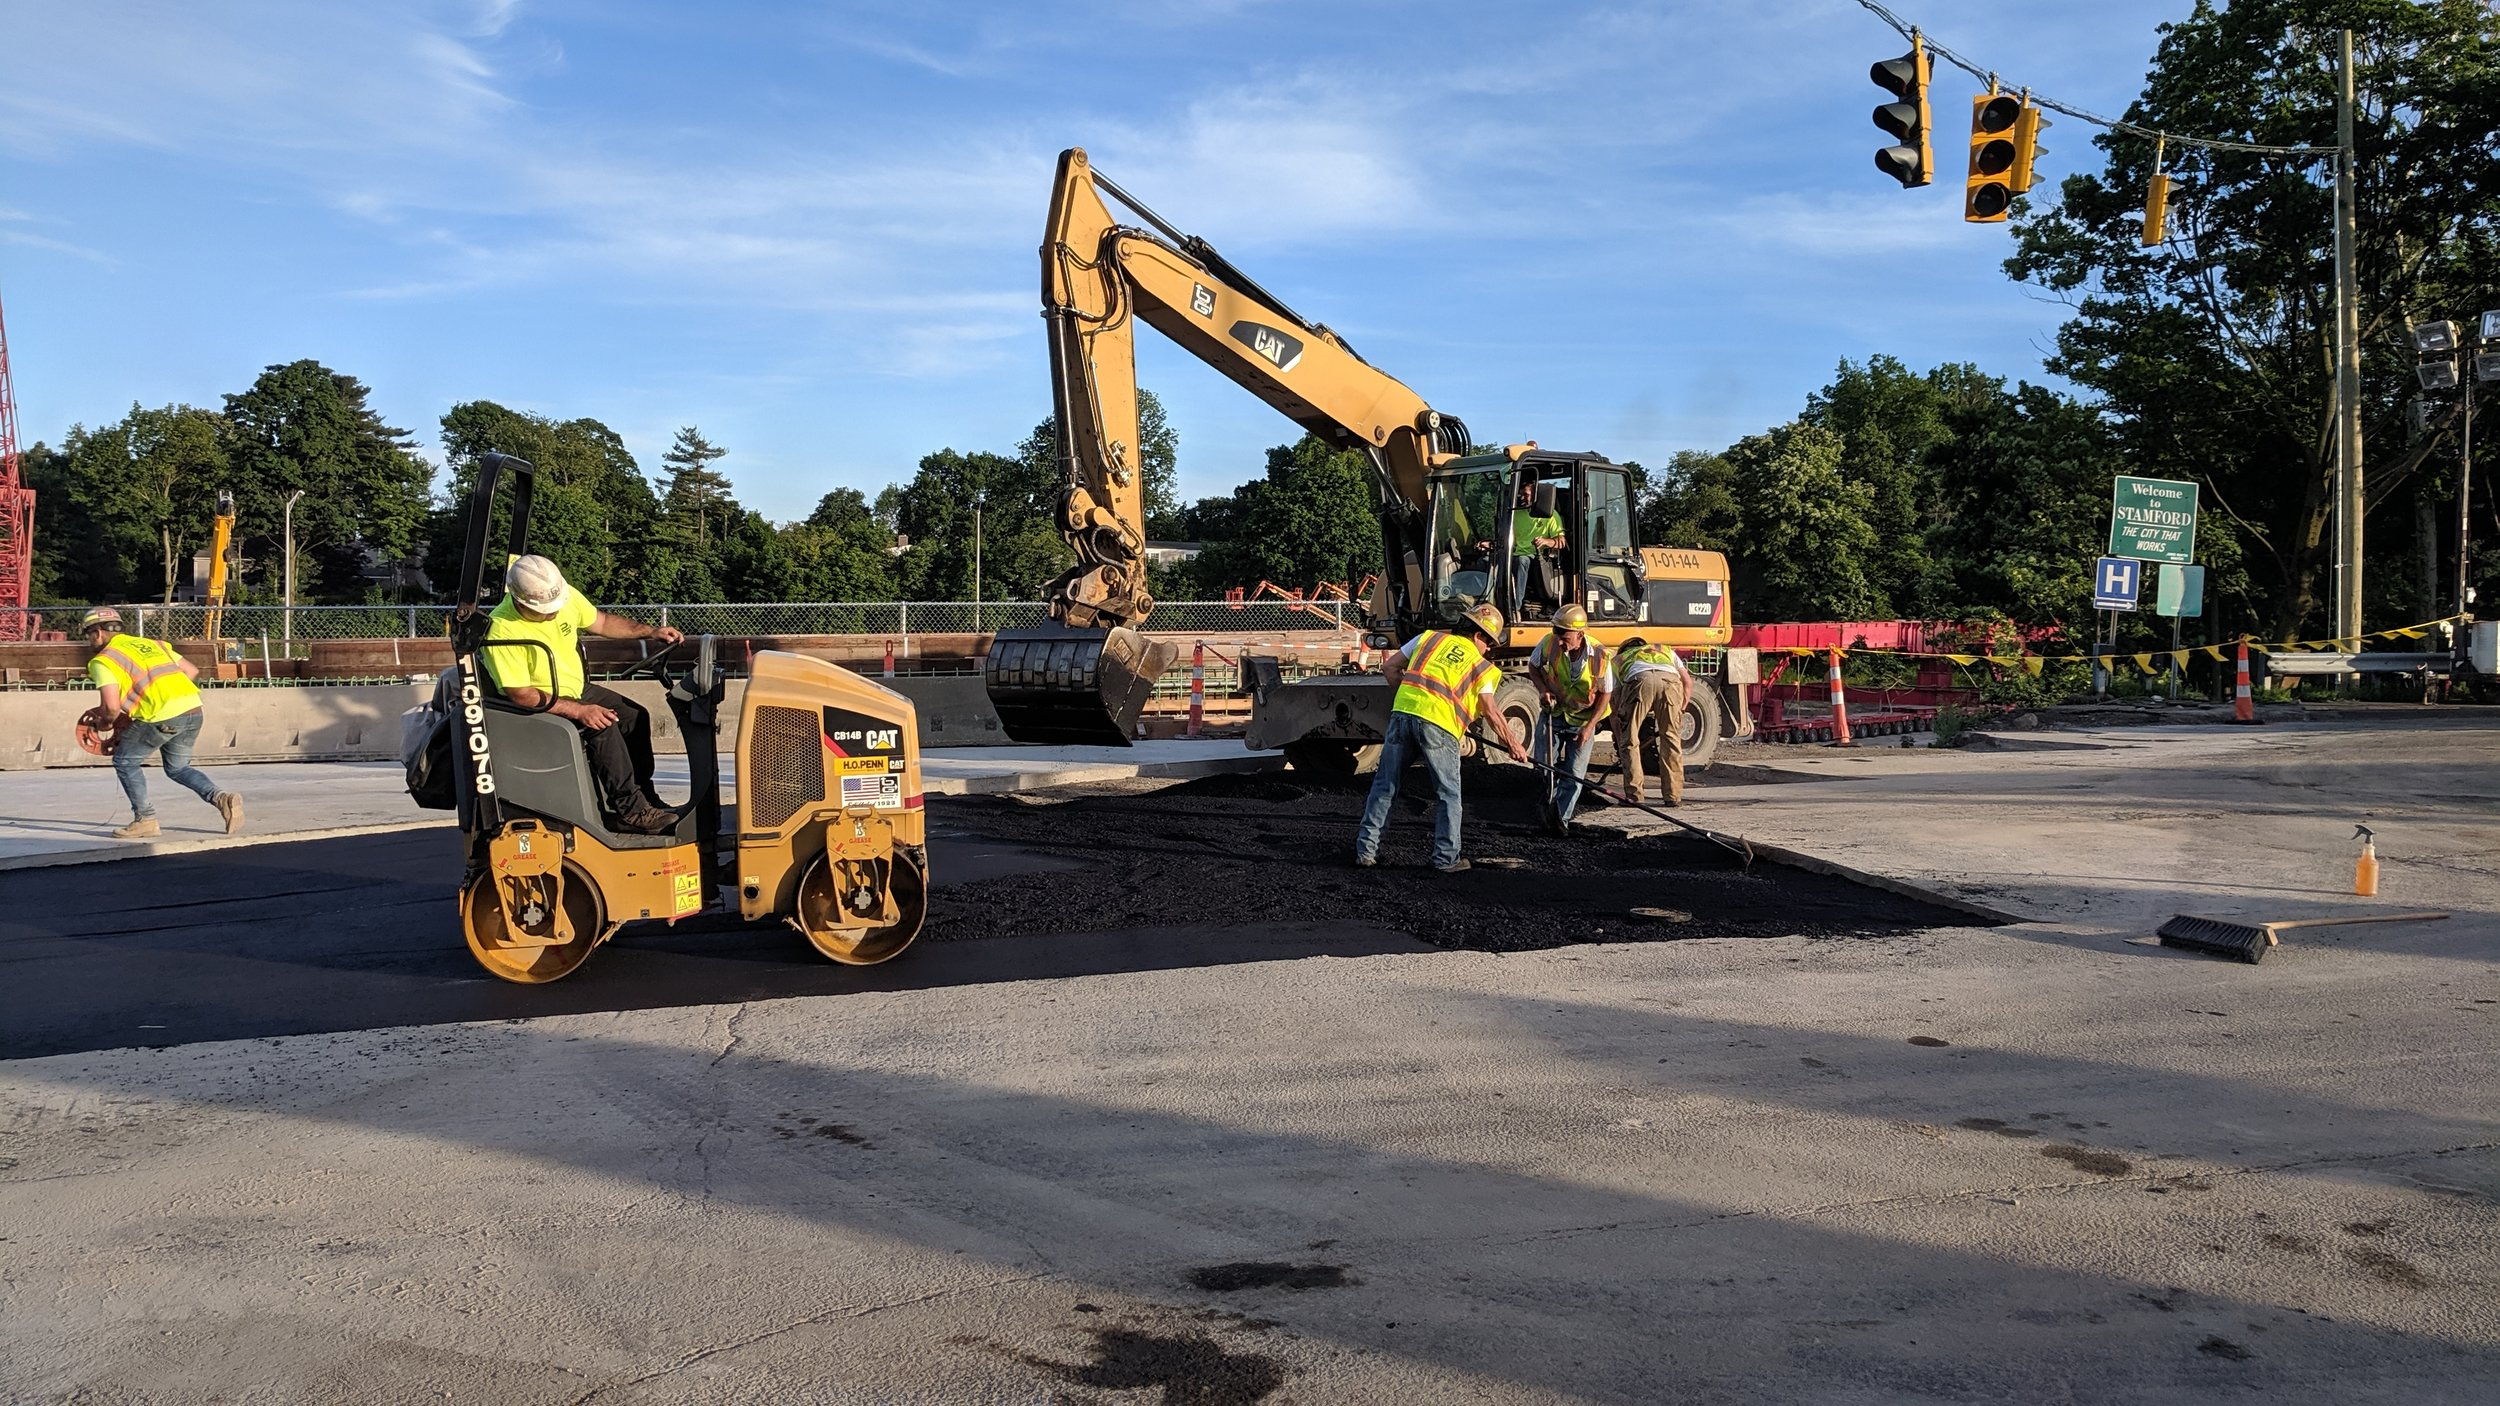 Workers installing temporary pavement for the approach from the West.  Taken the afternoon of 6/9/19 by Jonathan Wu